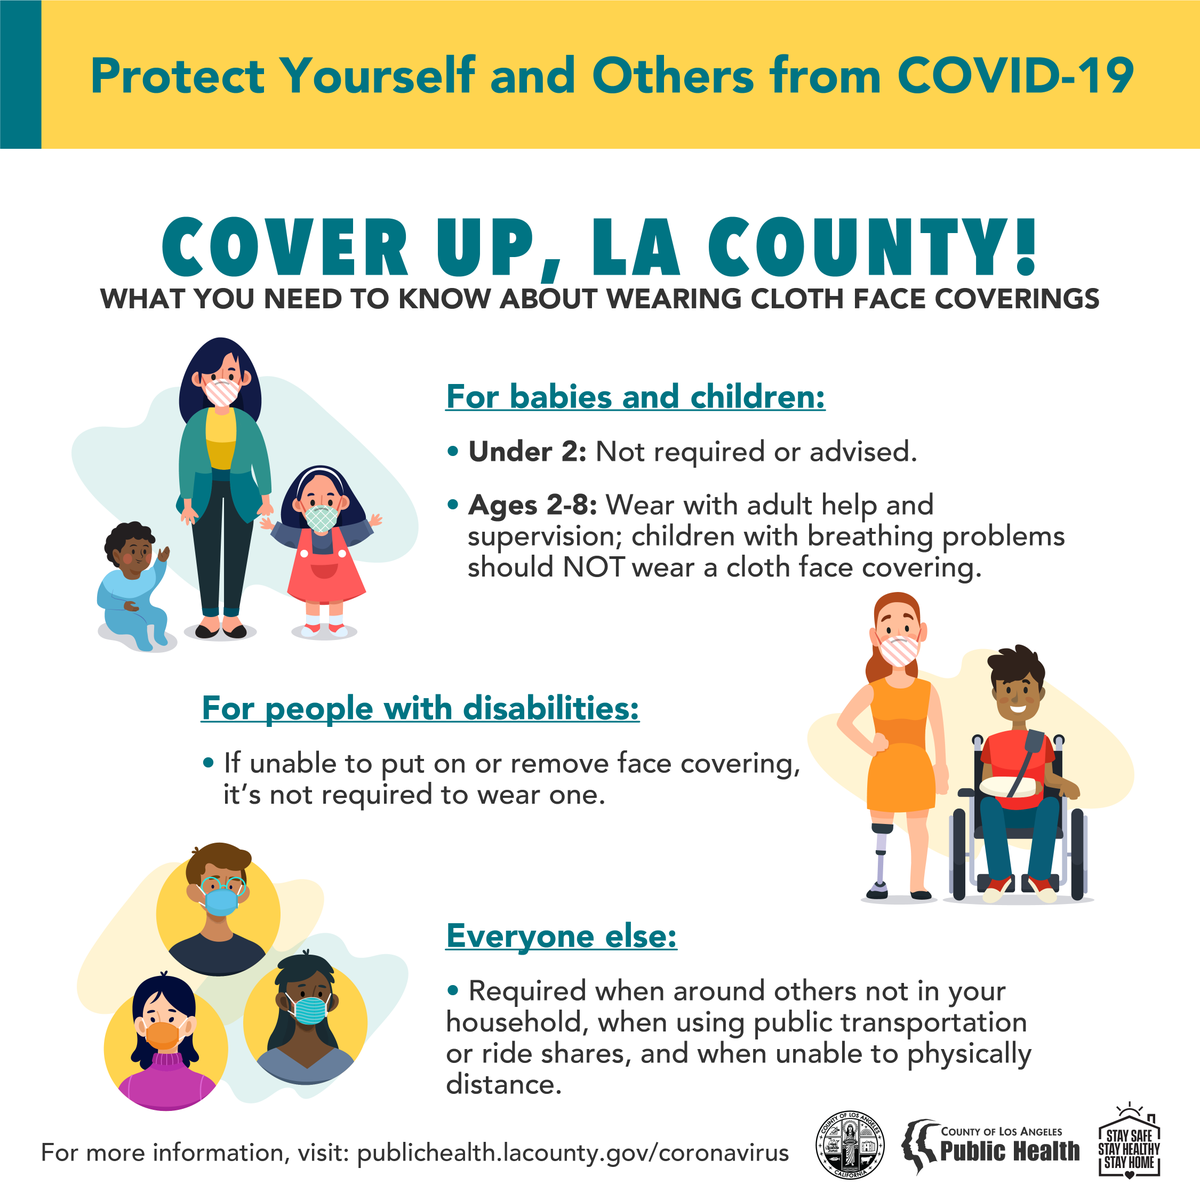 La Public Health On Twitter Remember Wear A Cloth Face Covering When Around Others Not From Your Household Children Under 2 Are Not Required To Wear Face Coverings Children Ages 2 8 Should